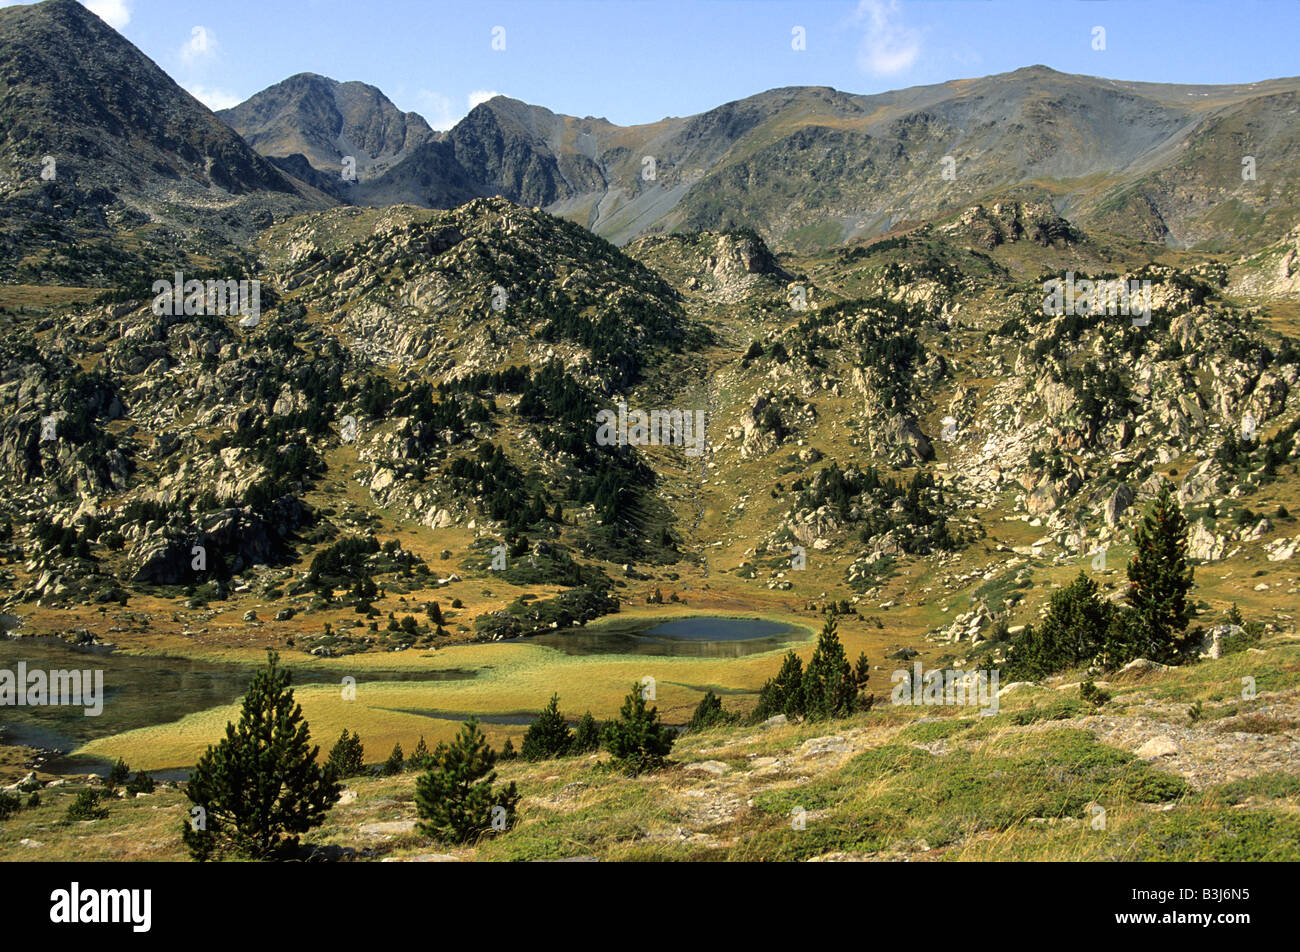 Massif of Carlit range in the Pyrenees-Orientales, France - Stock Image